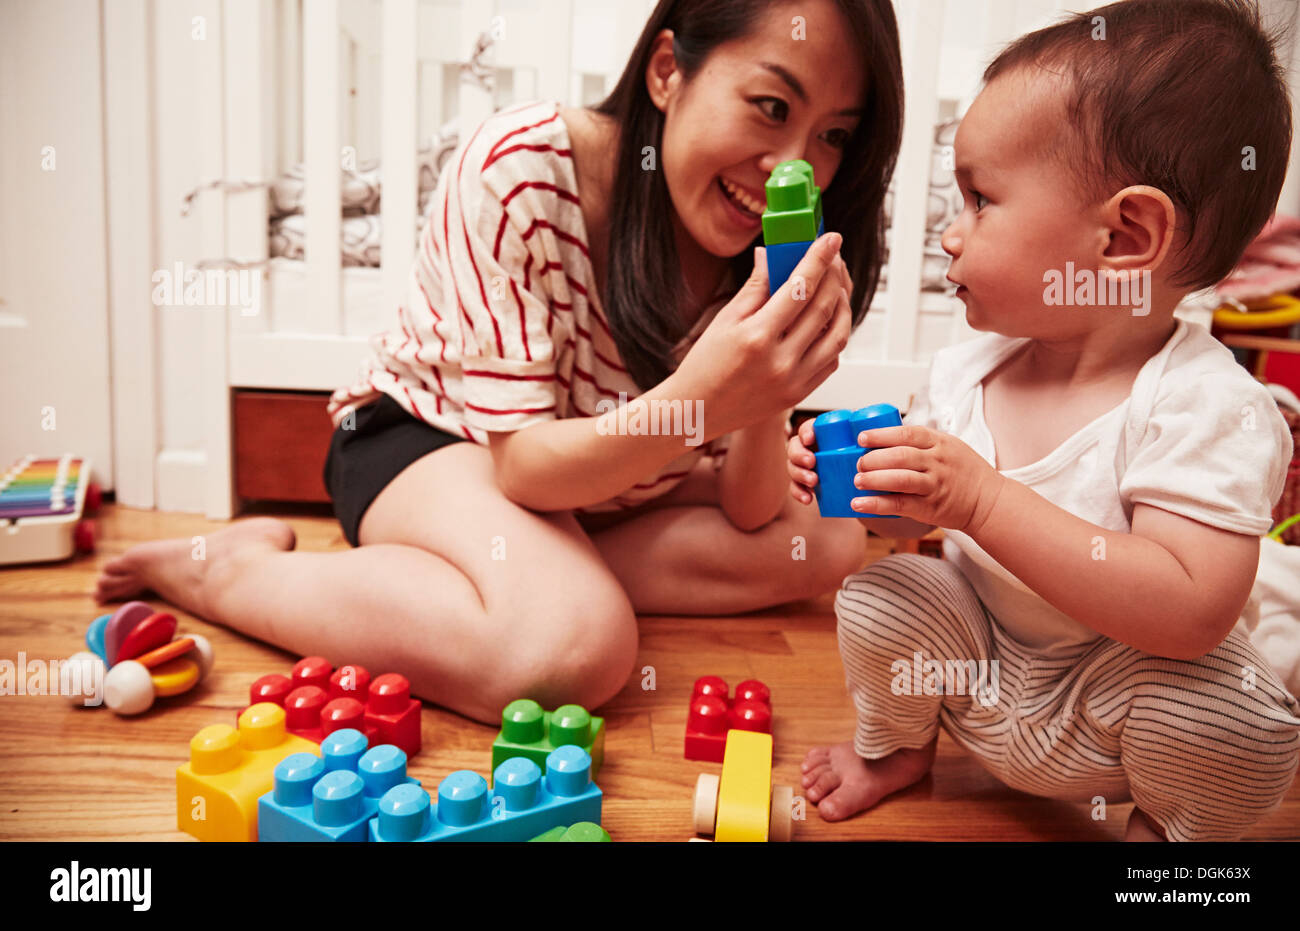 Mother and baby boy playing with building blocks - Stock Image